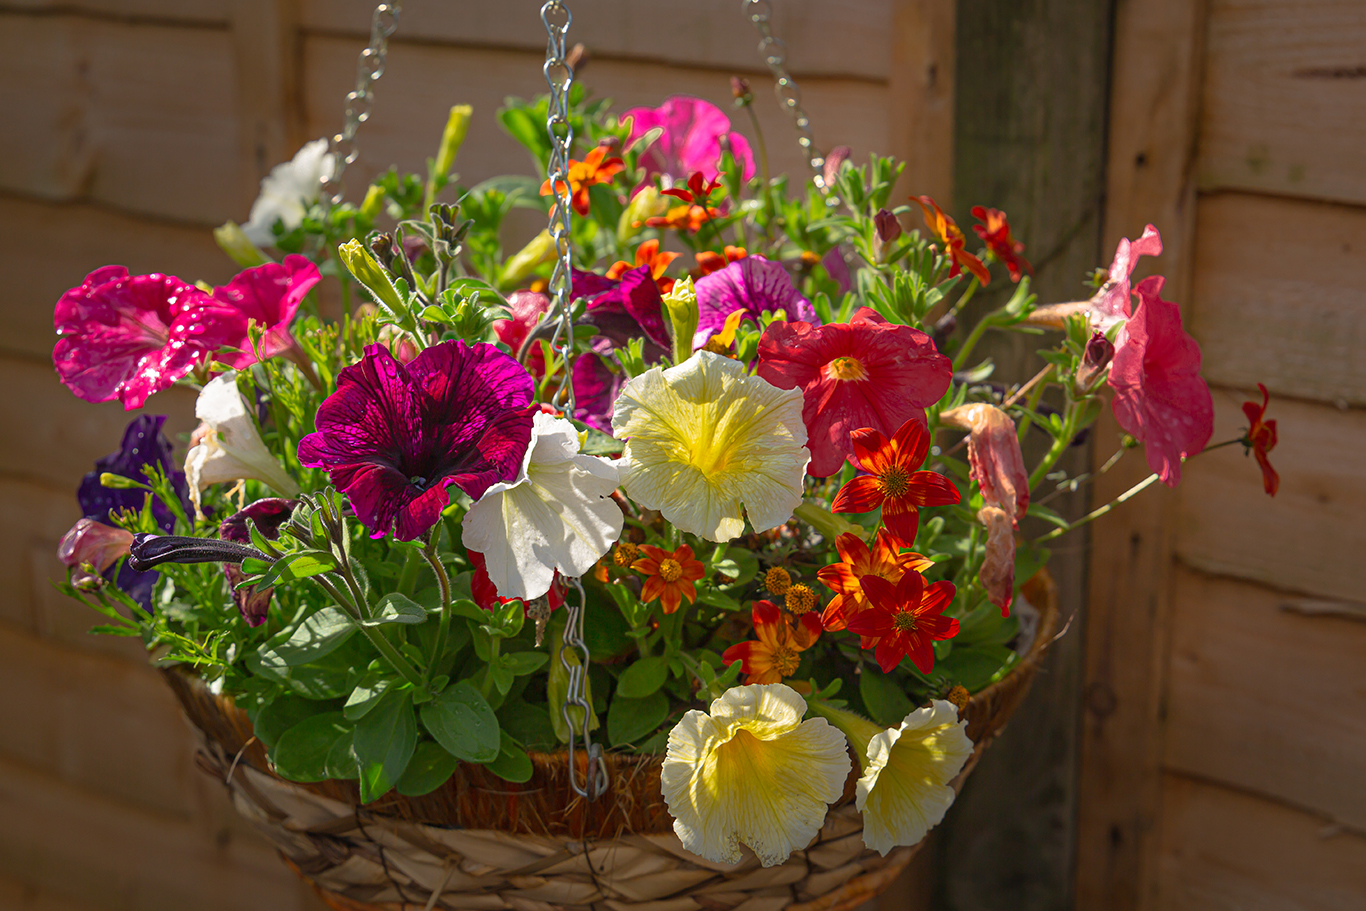 Kims hanging baskets